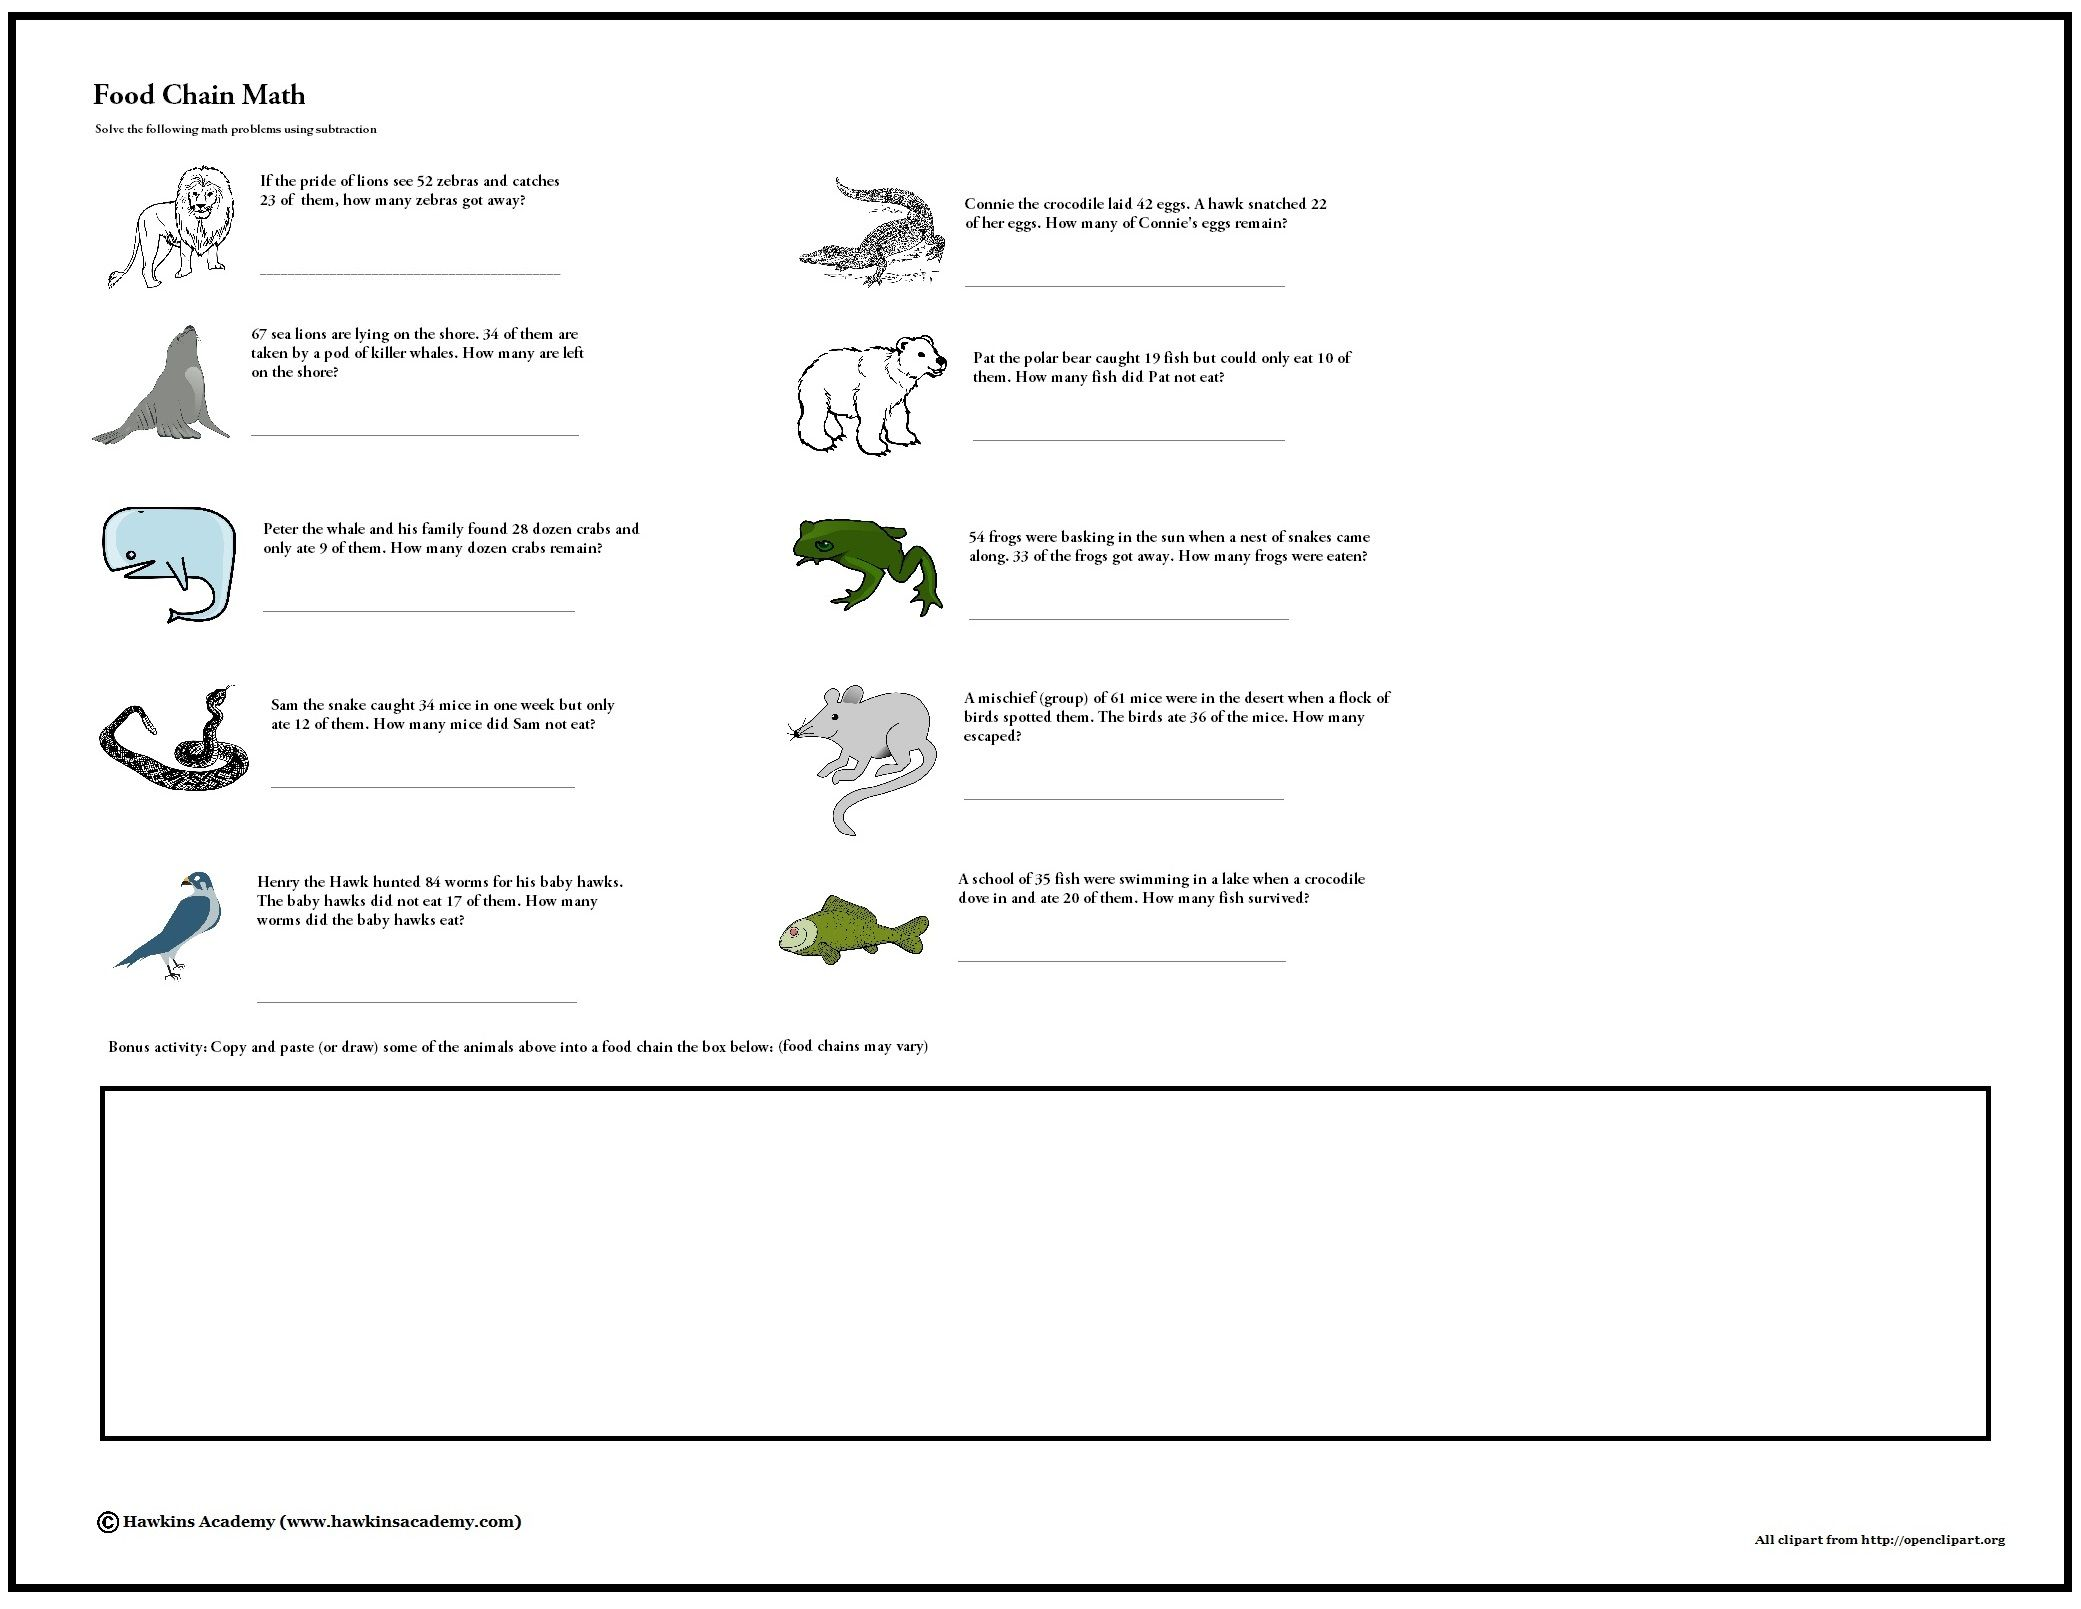 Food Chain Math Free Download